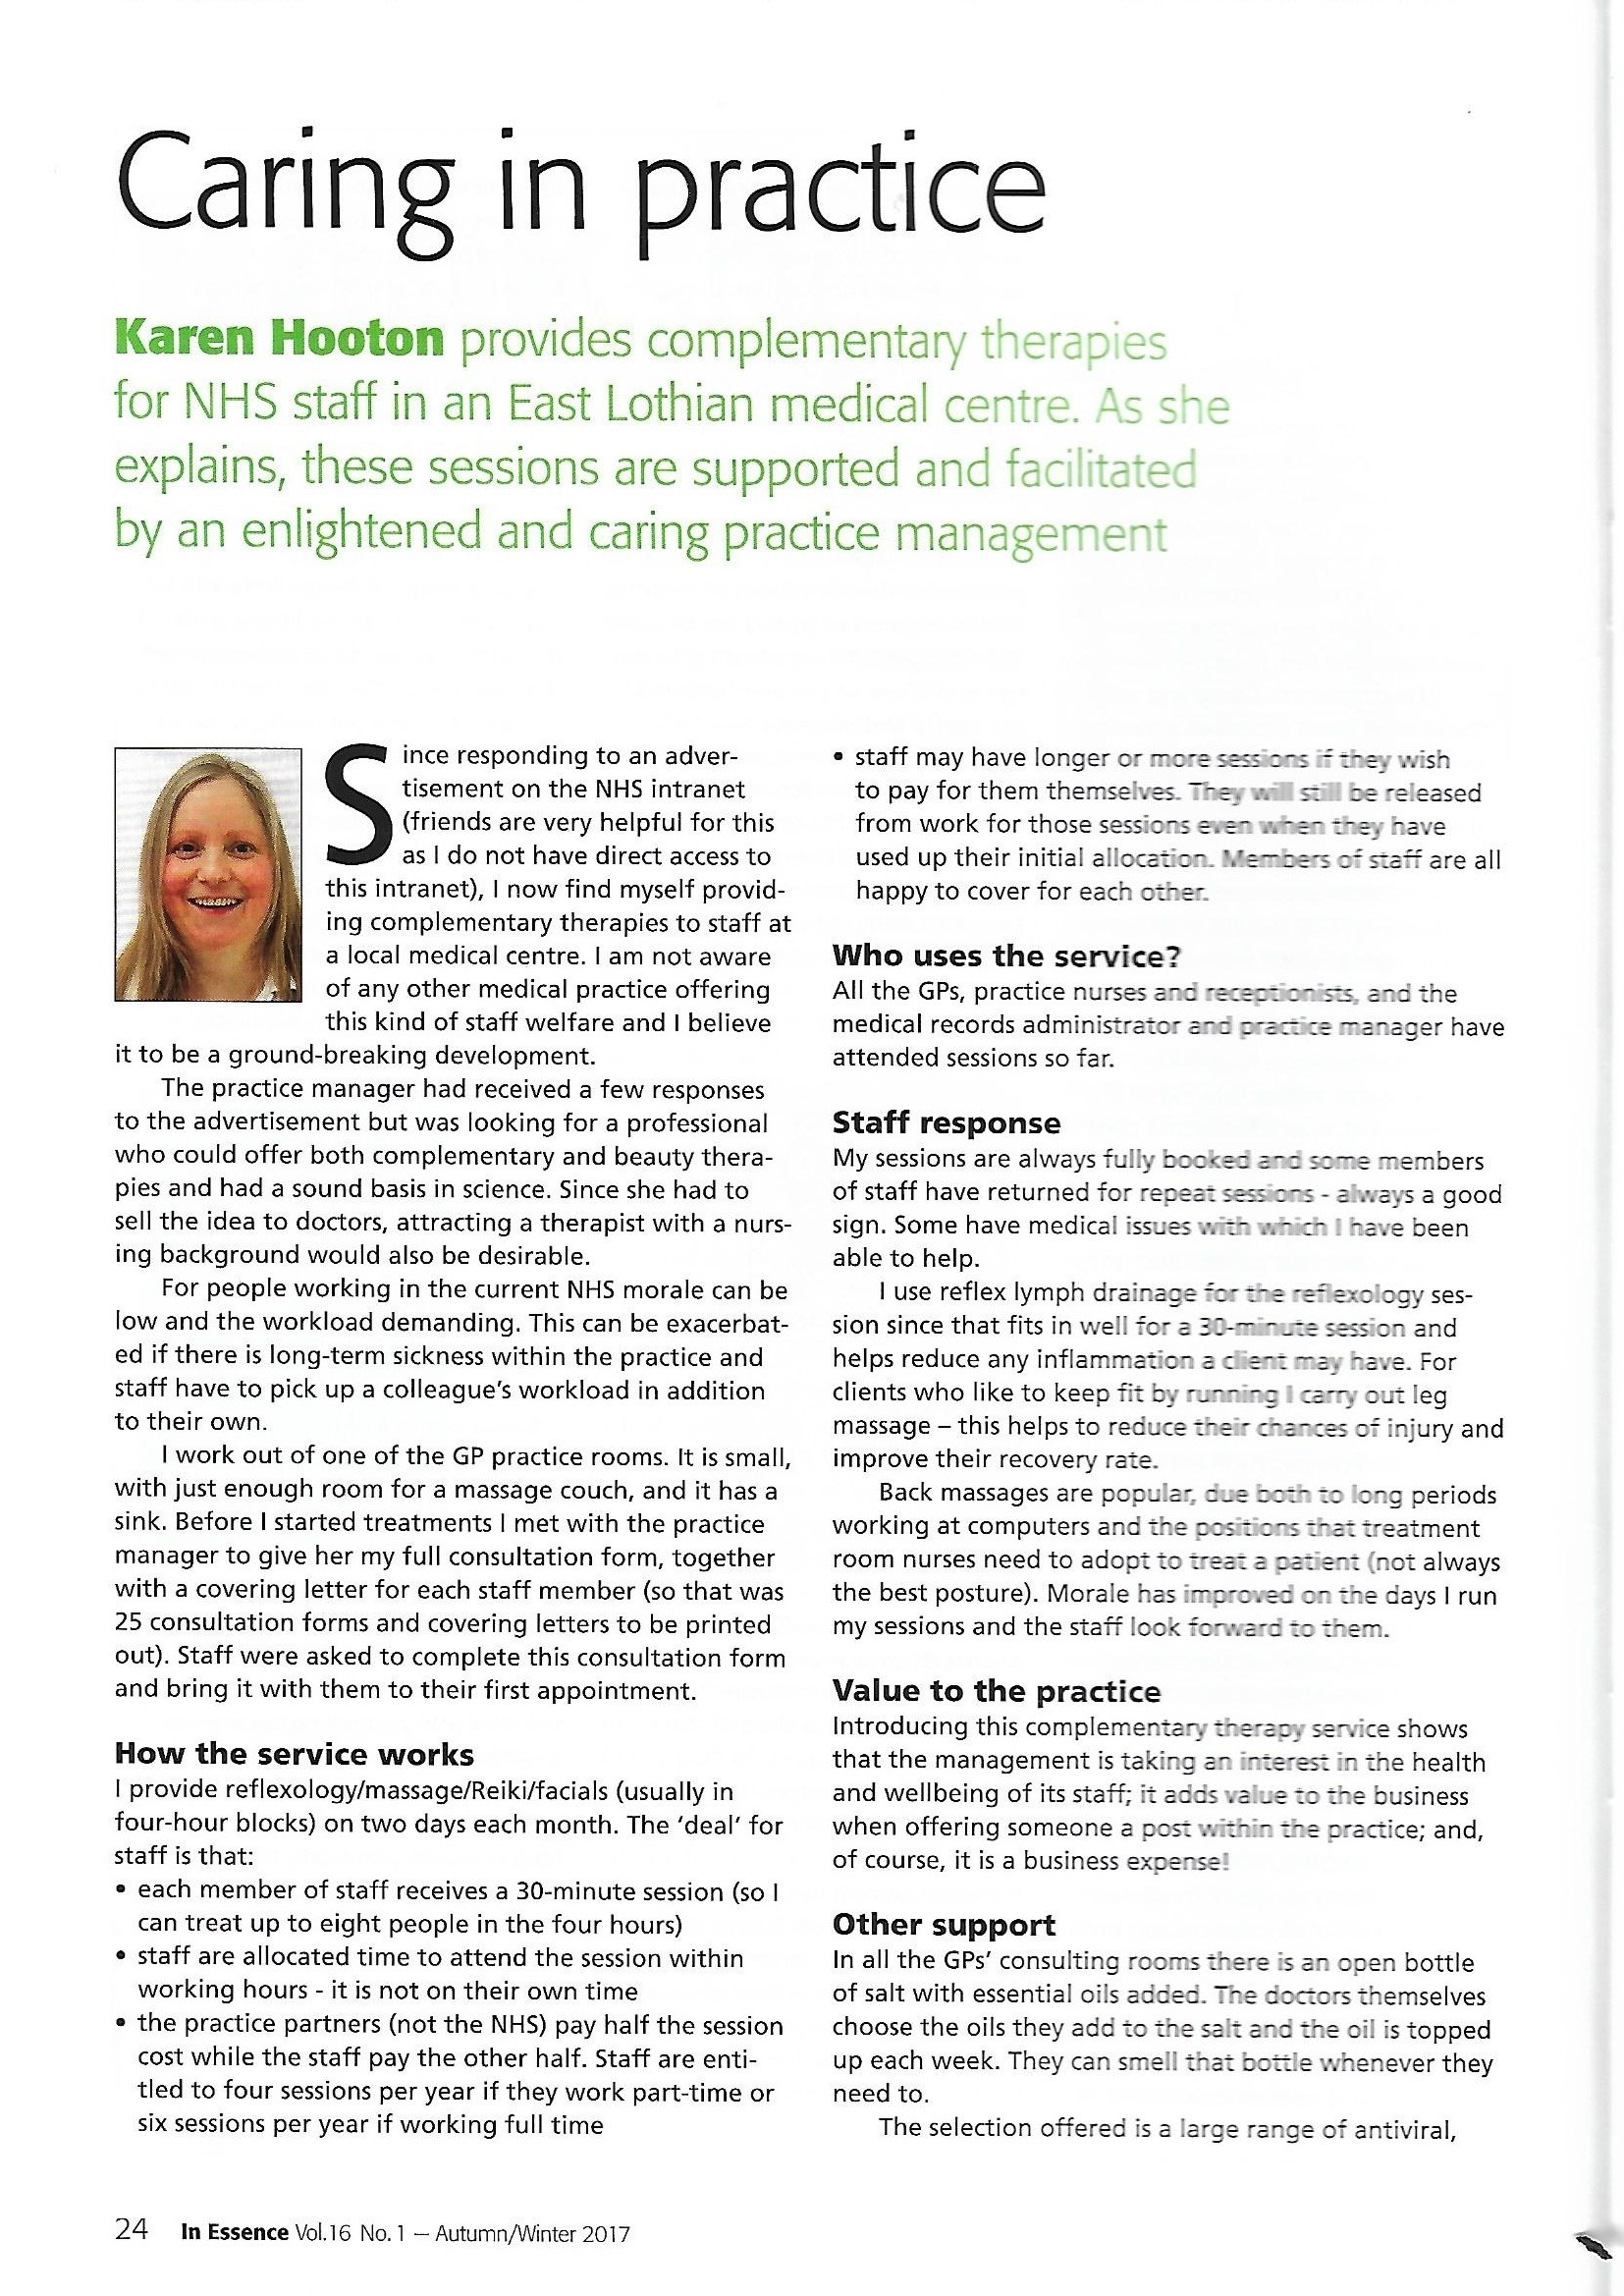 Caring in practice article page 1 In Essence IFPA journal